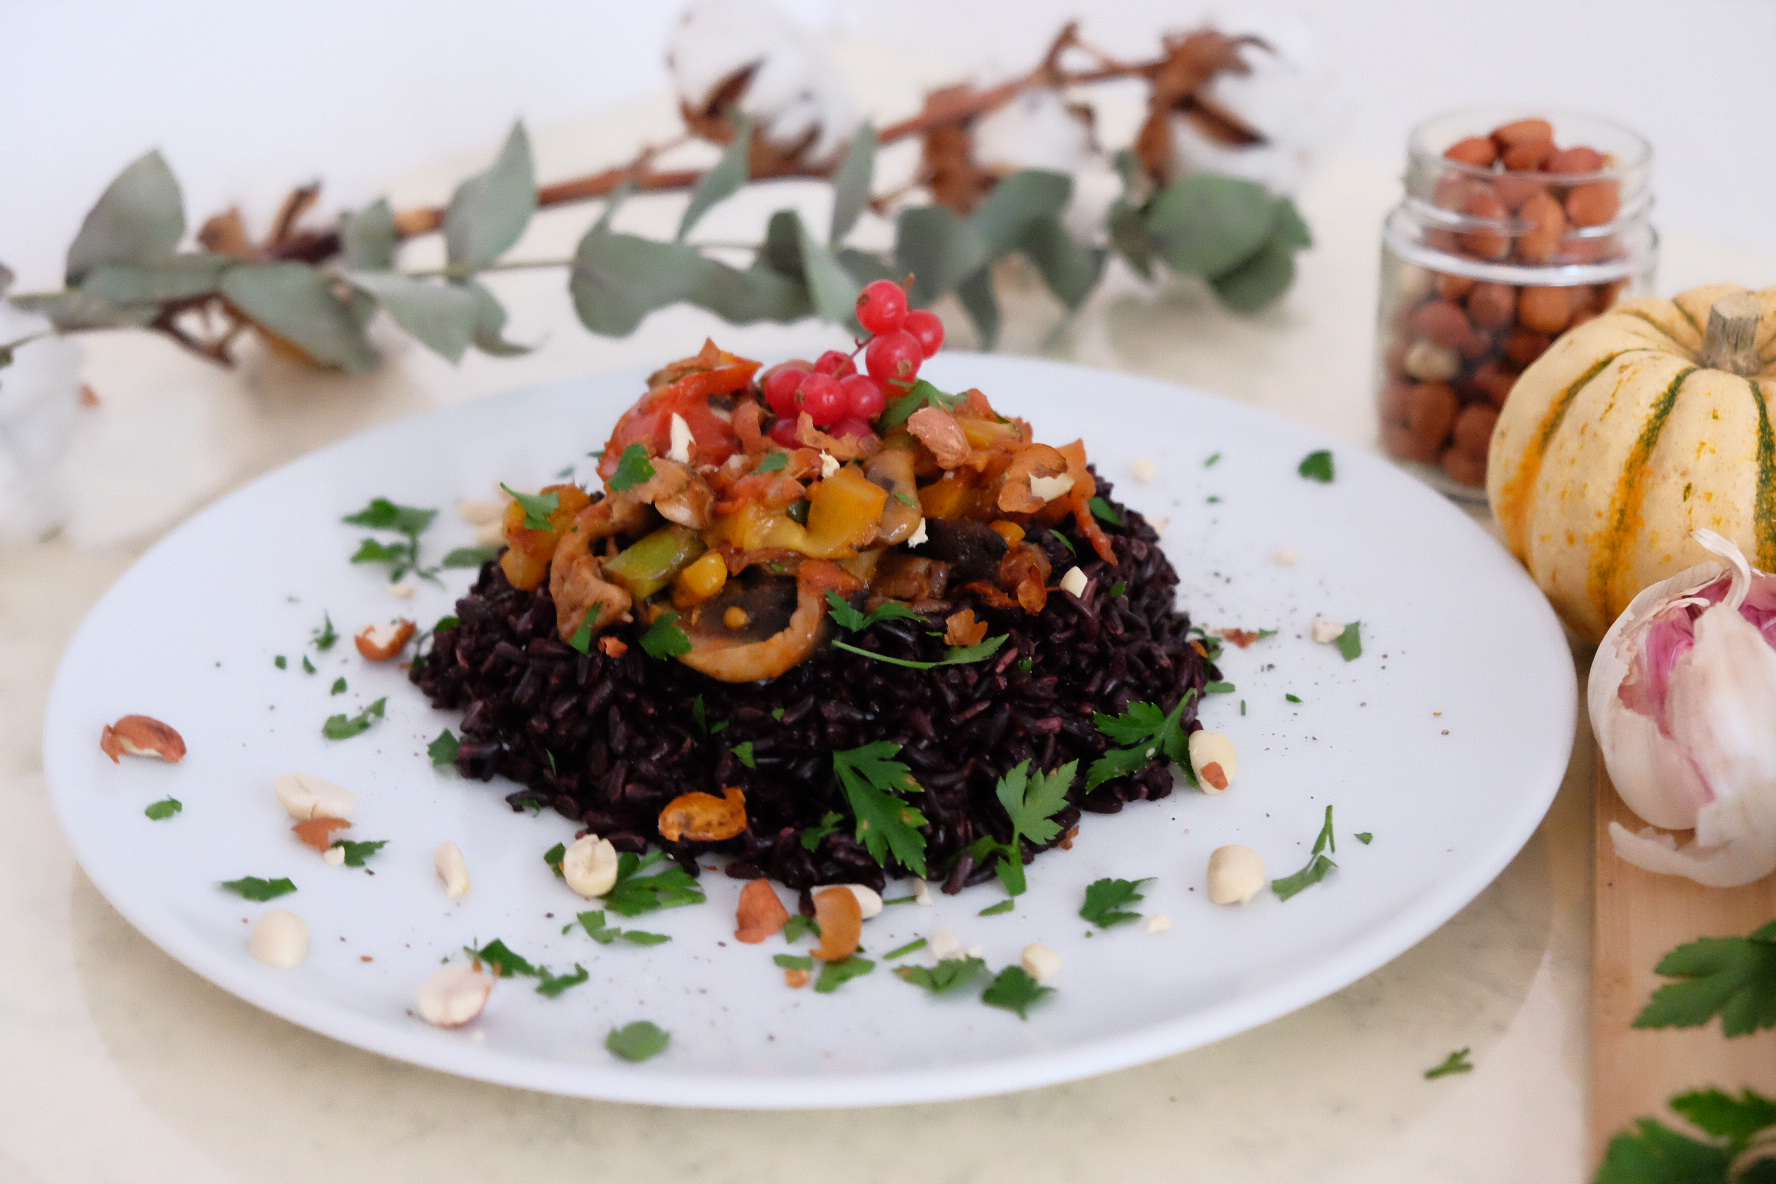 Arroz asiático saludable / Asiatique riz noir / Veggie black rice